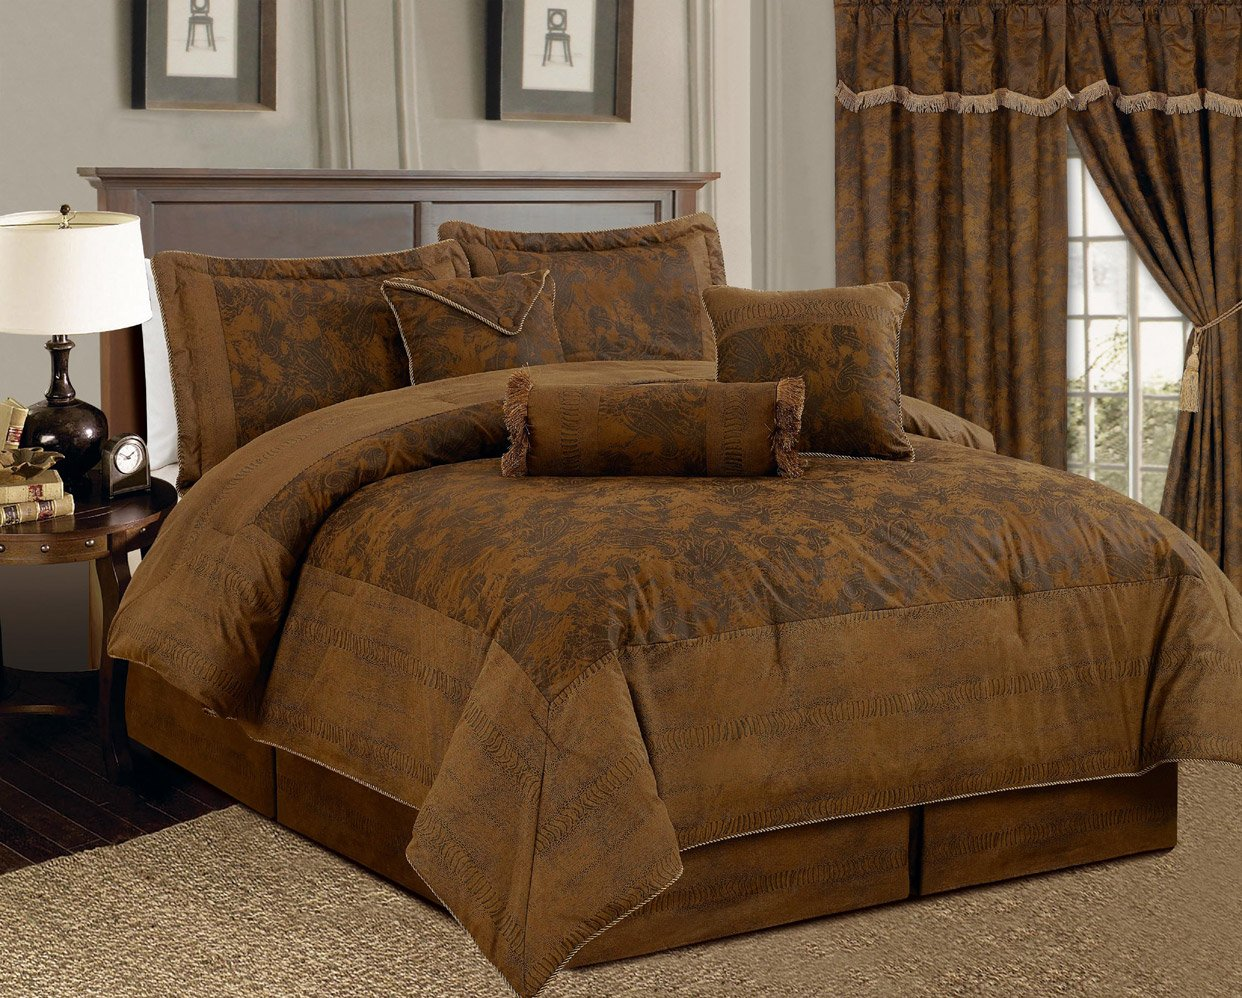 Amazon com 7 piece dark camel brown lavish oversize 106x 94 comforter set micro suede bed in a bag california king size bedding home kitchen